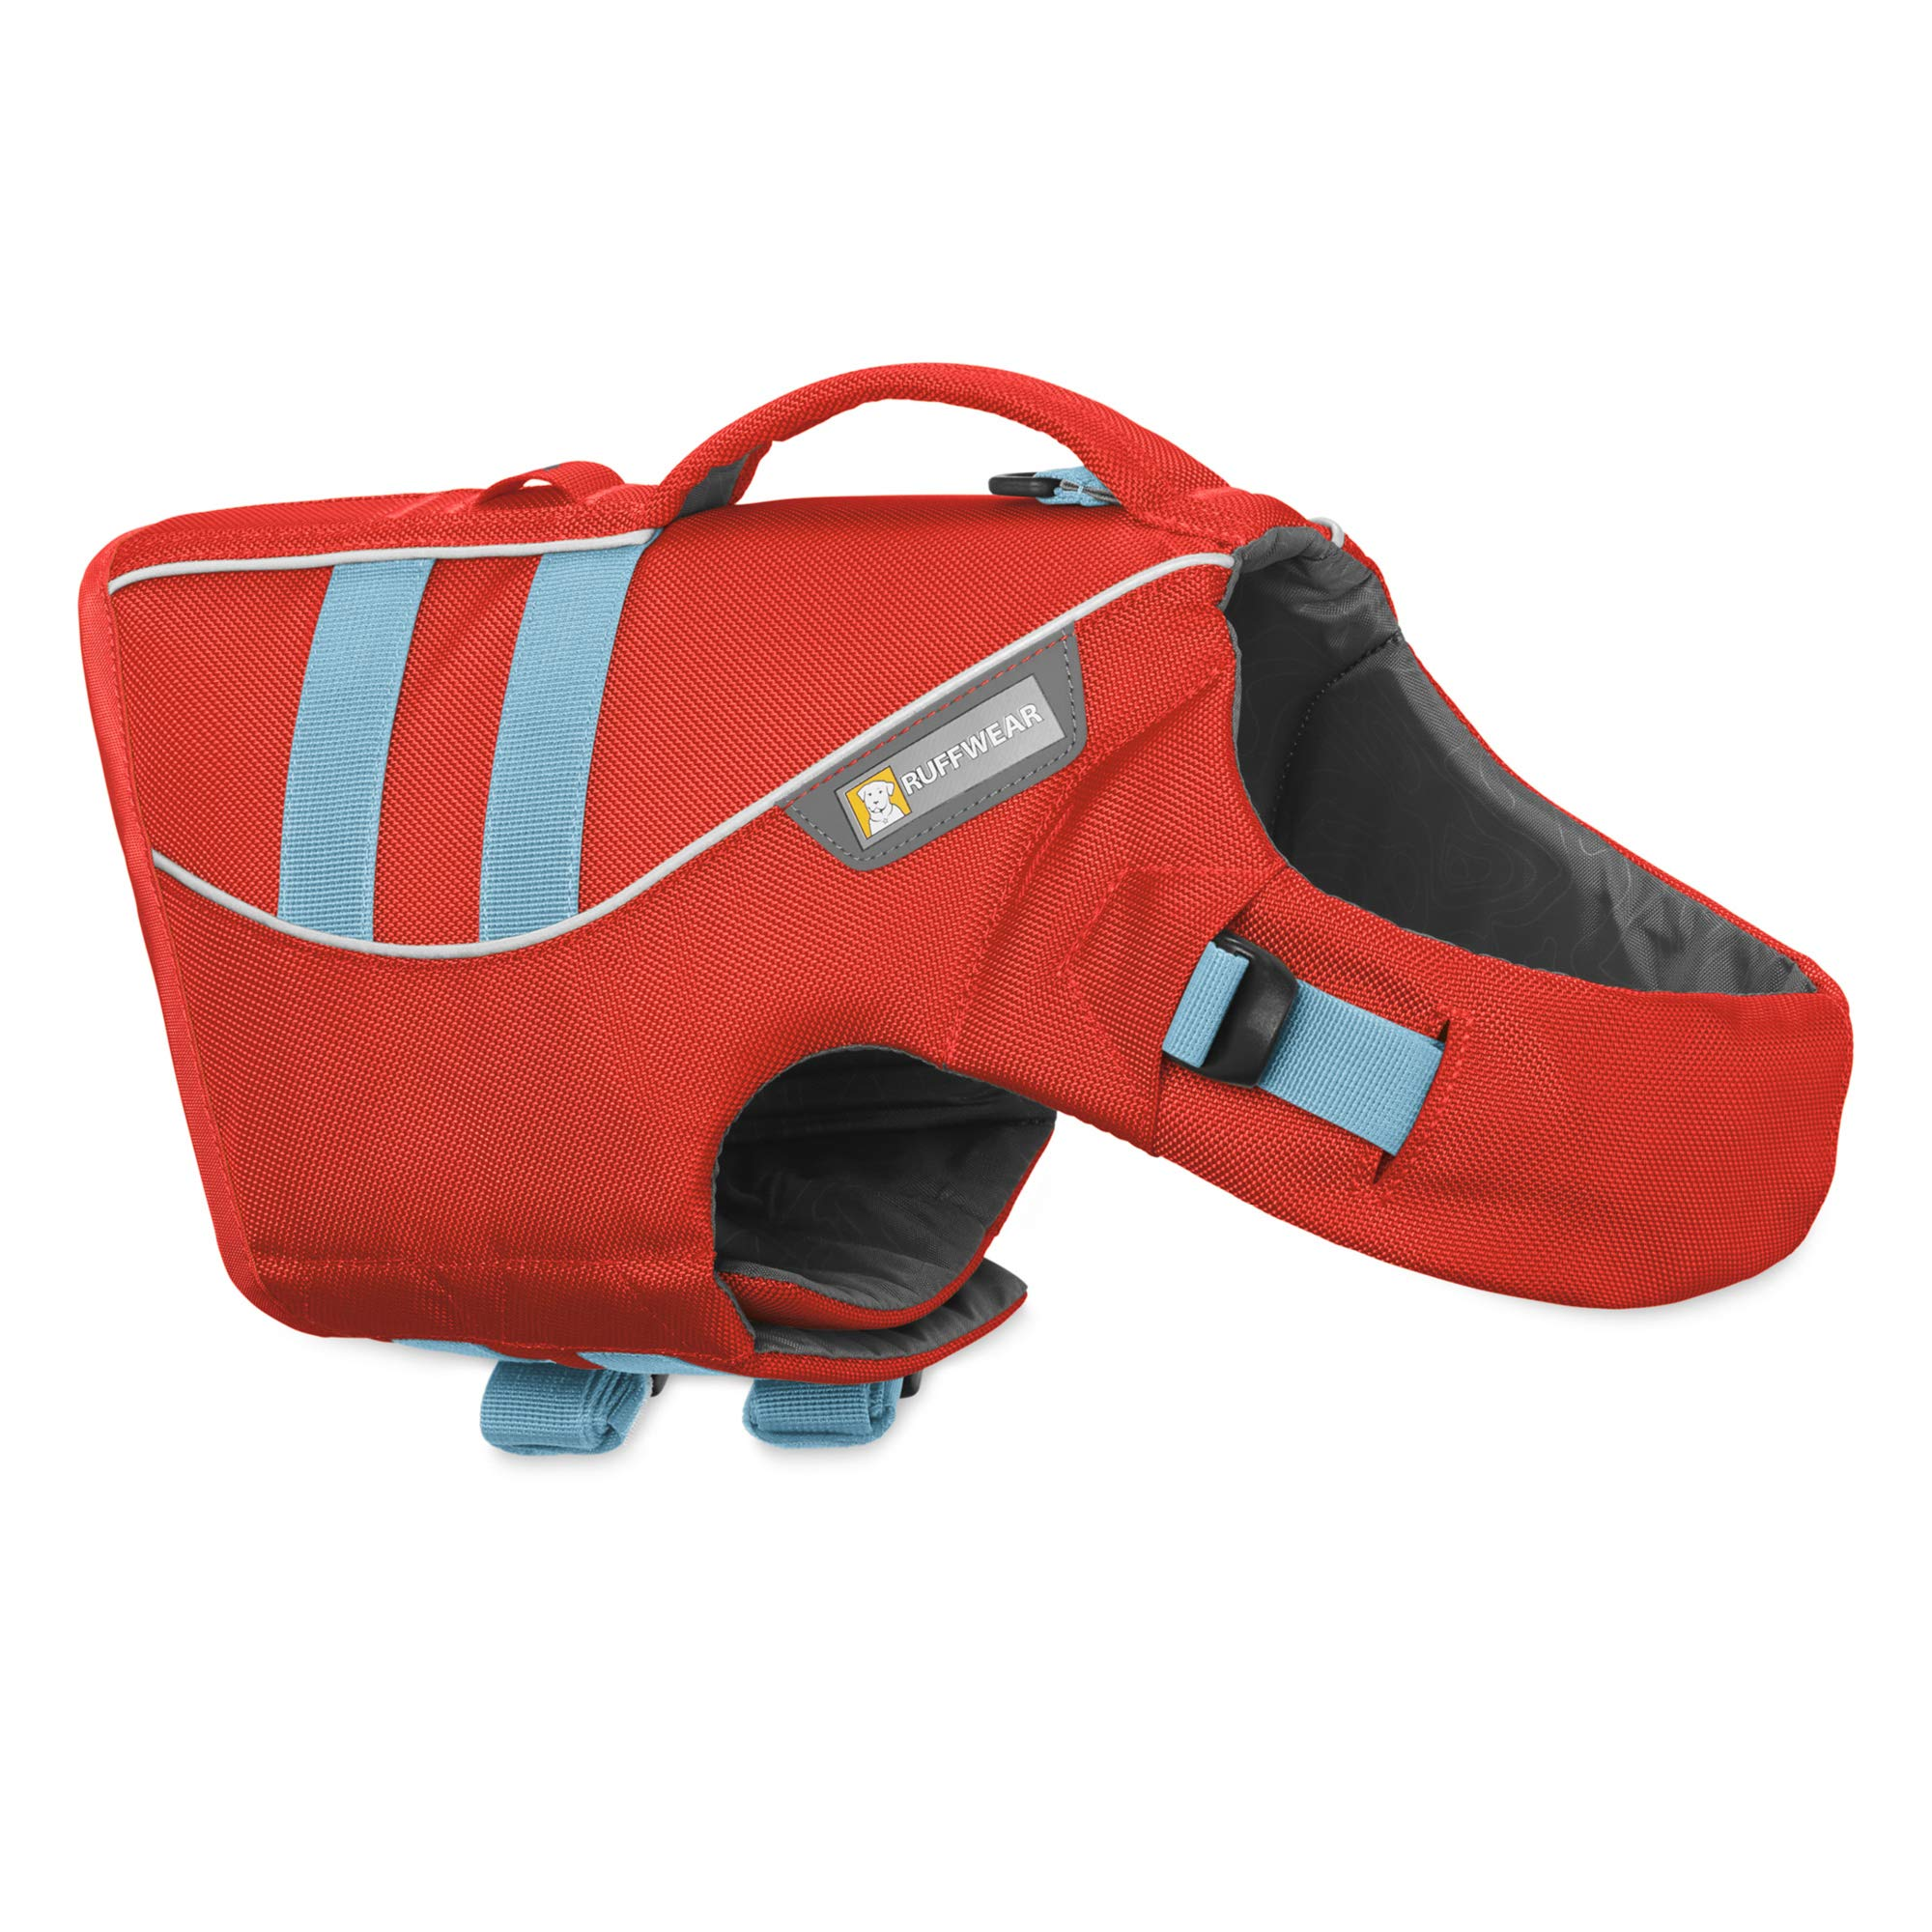 RUFFWEAR - Float Coat Dog Life Jacket for Swimming, Adjustable and Reflective, Sockeye Red, Large by RUFFWEAR